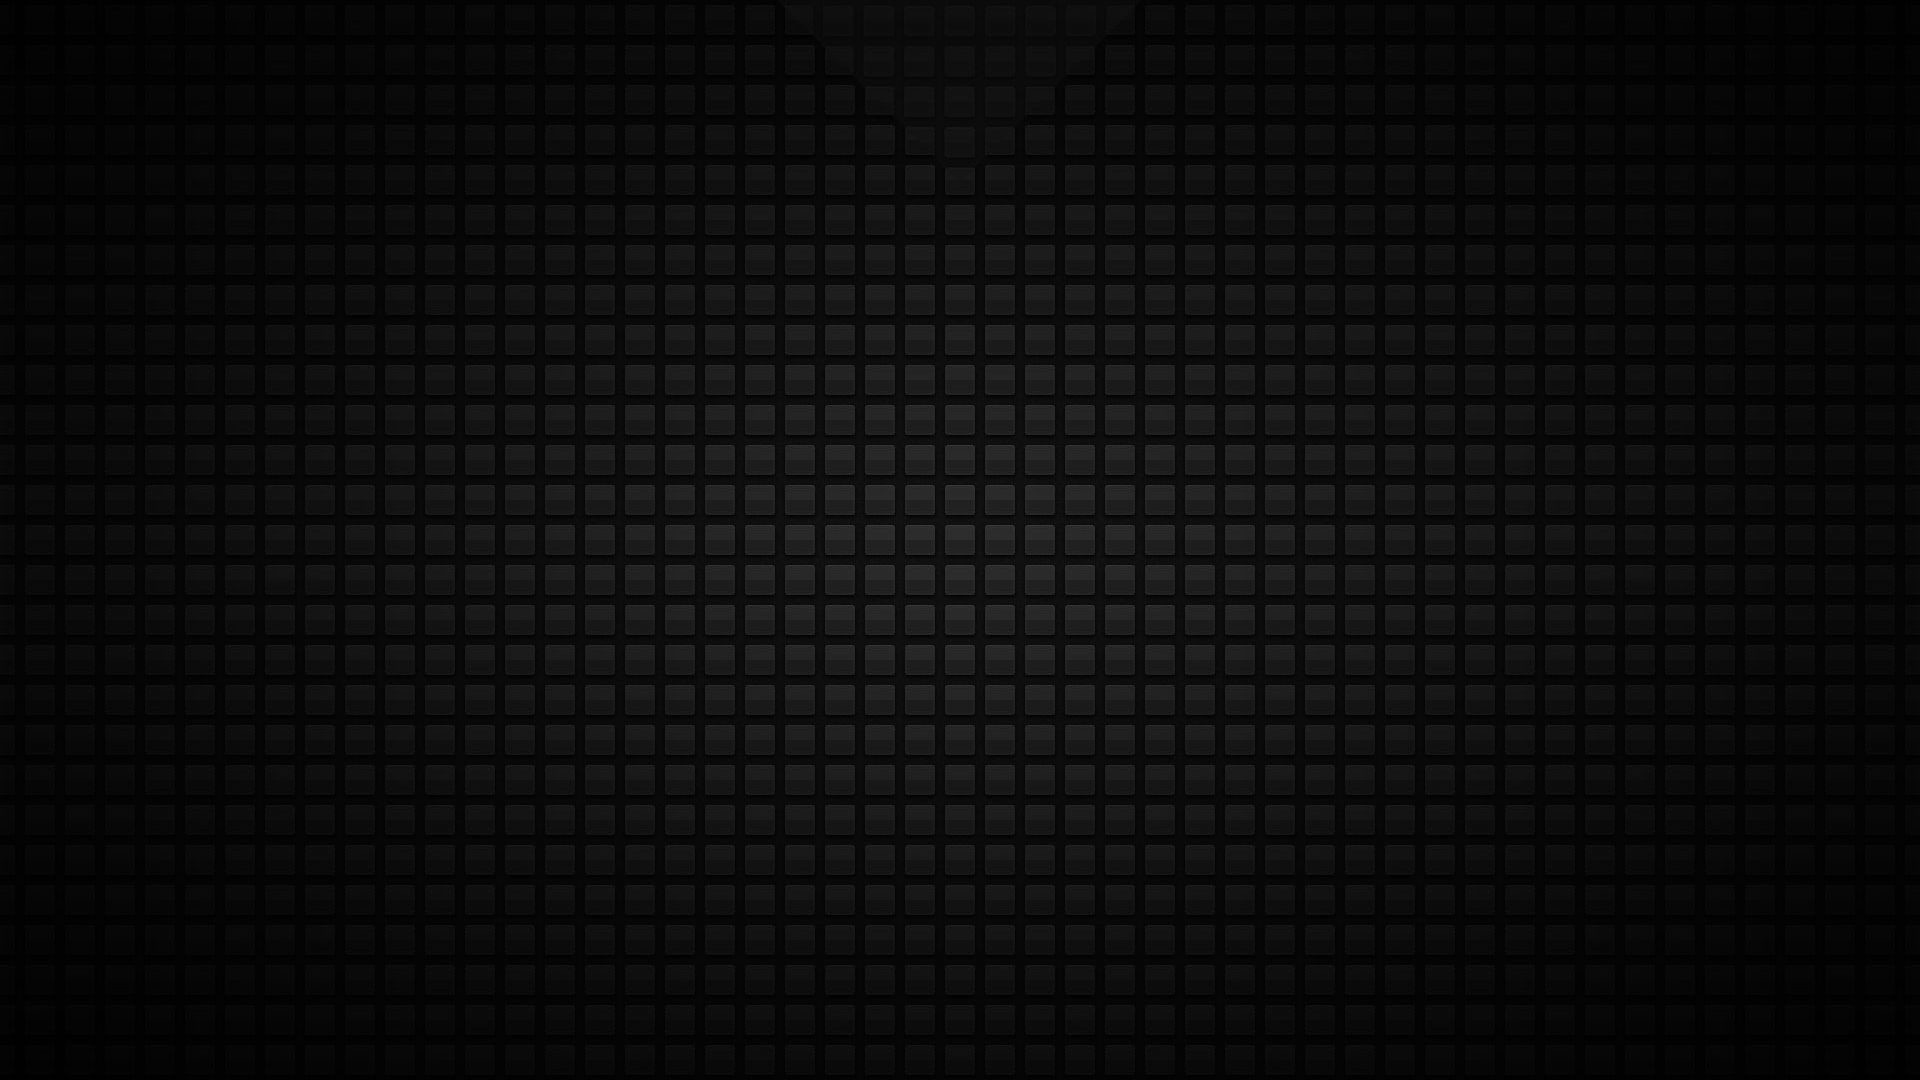 … dark gray wallpapers wallpapersafari …